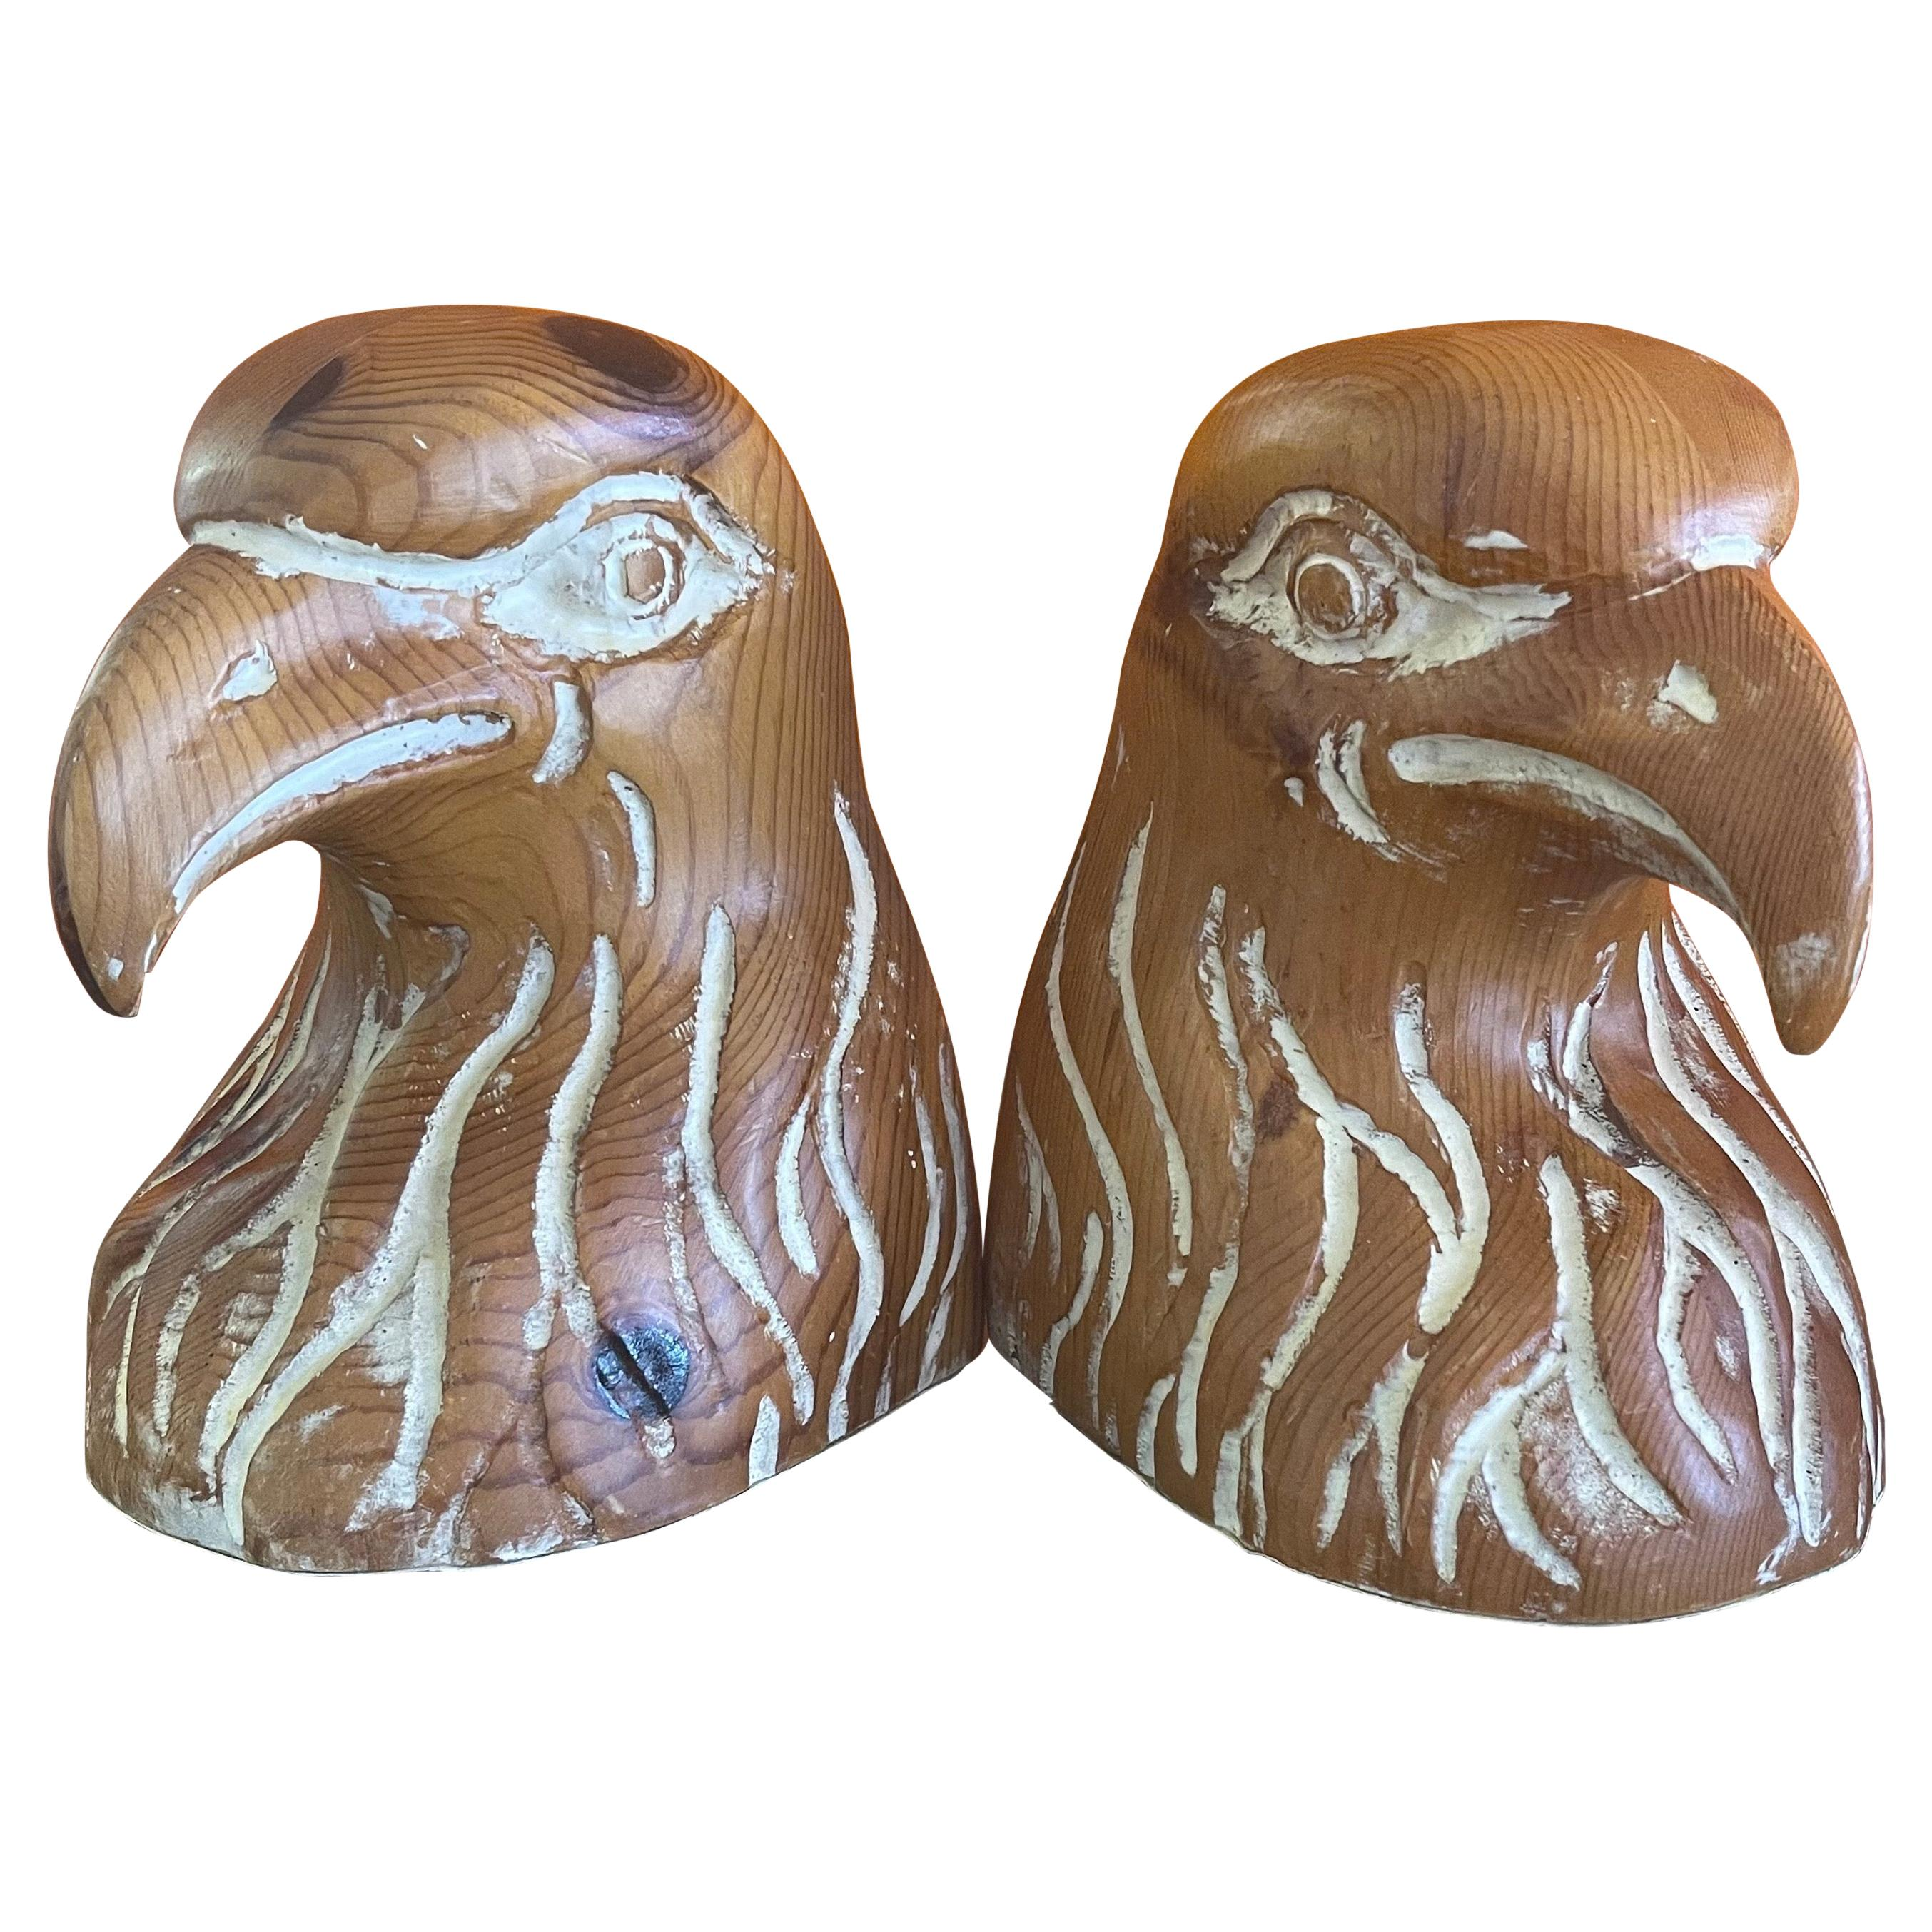 Pair of Hand Carved Knotty Pine Wood Eagle Head Bookends by Sarreid